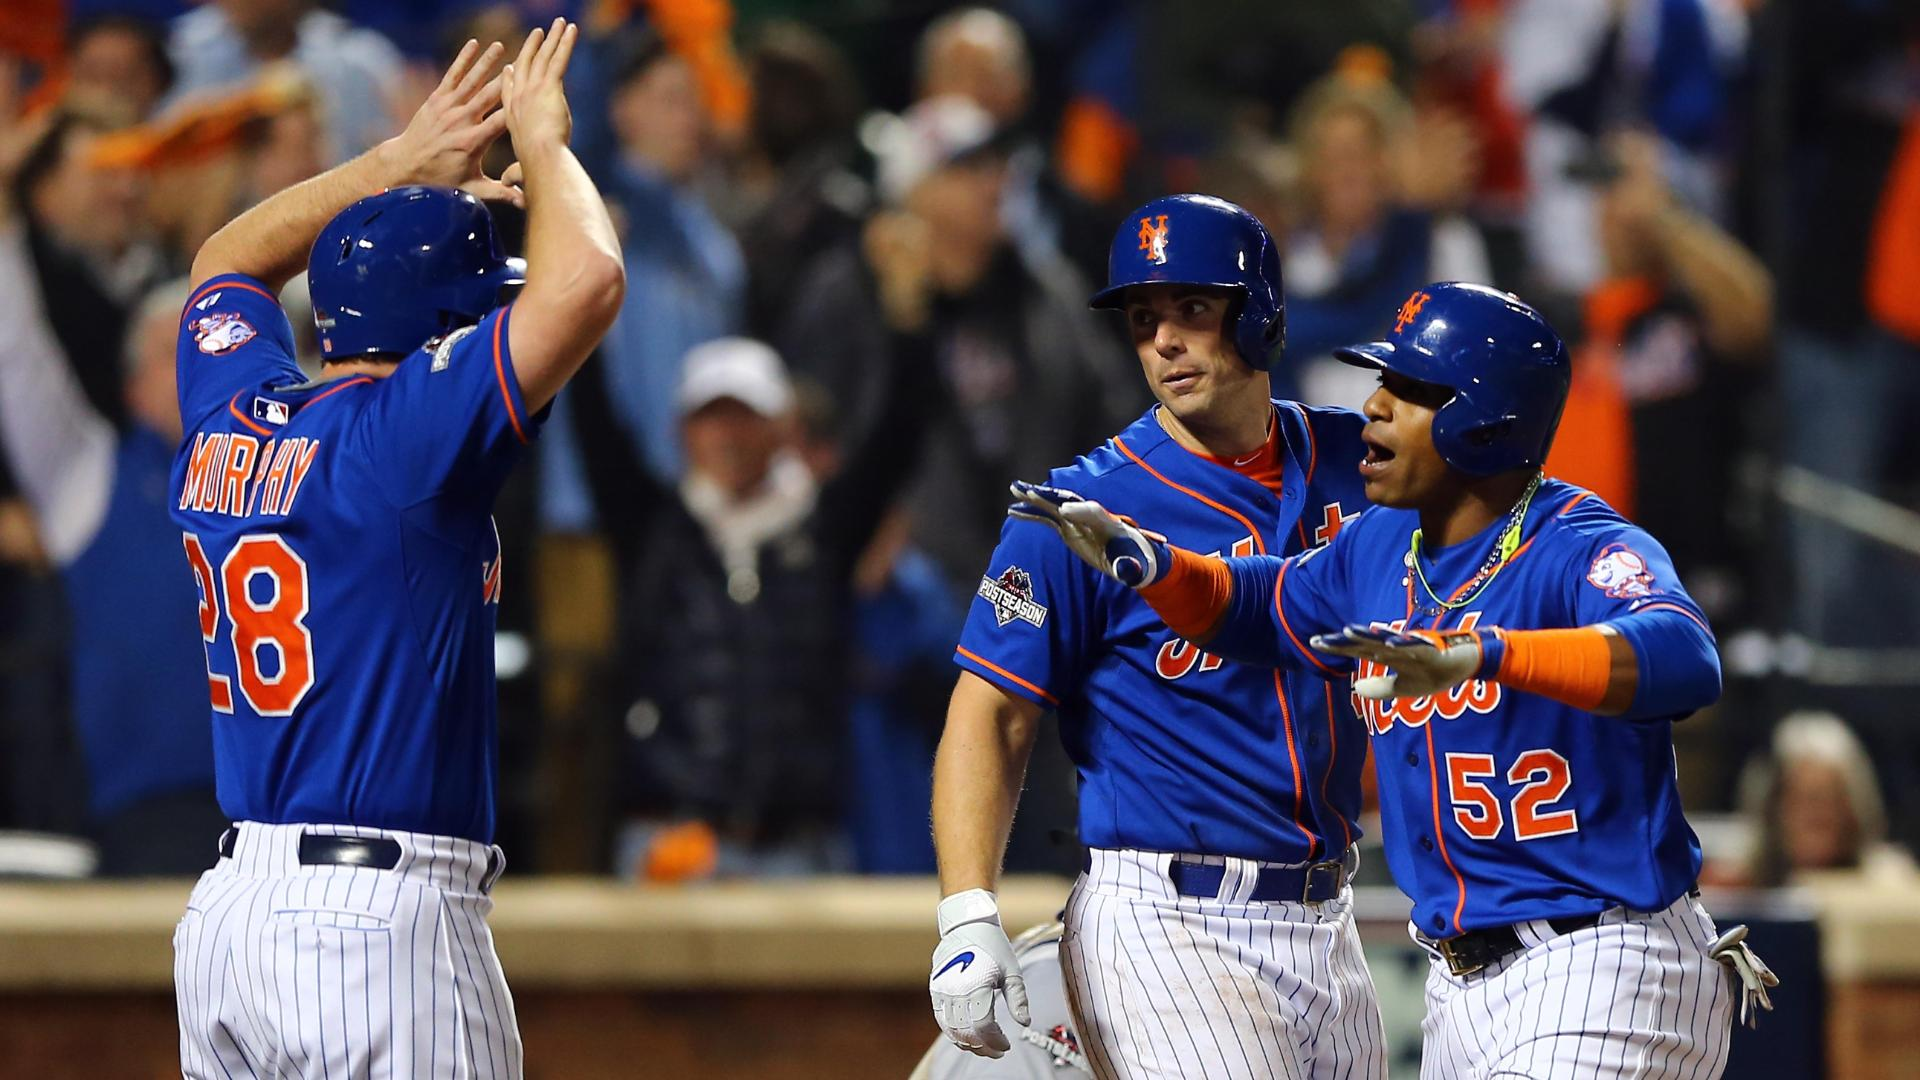 O'Connor: Mets show they can be world-beaters